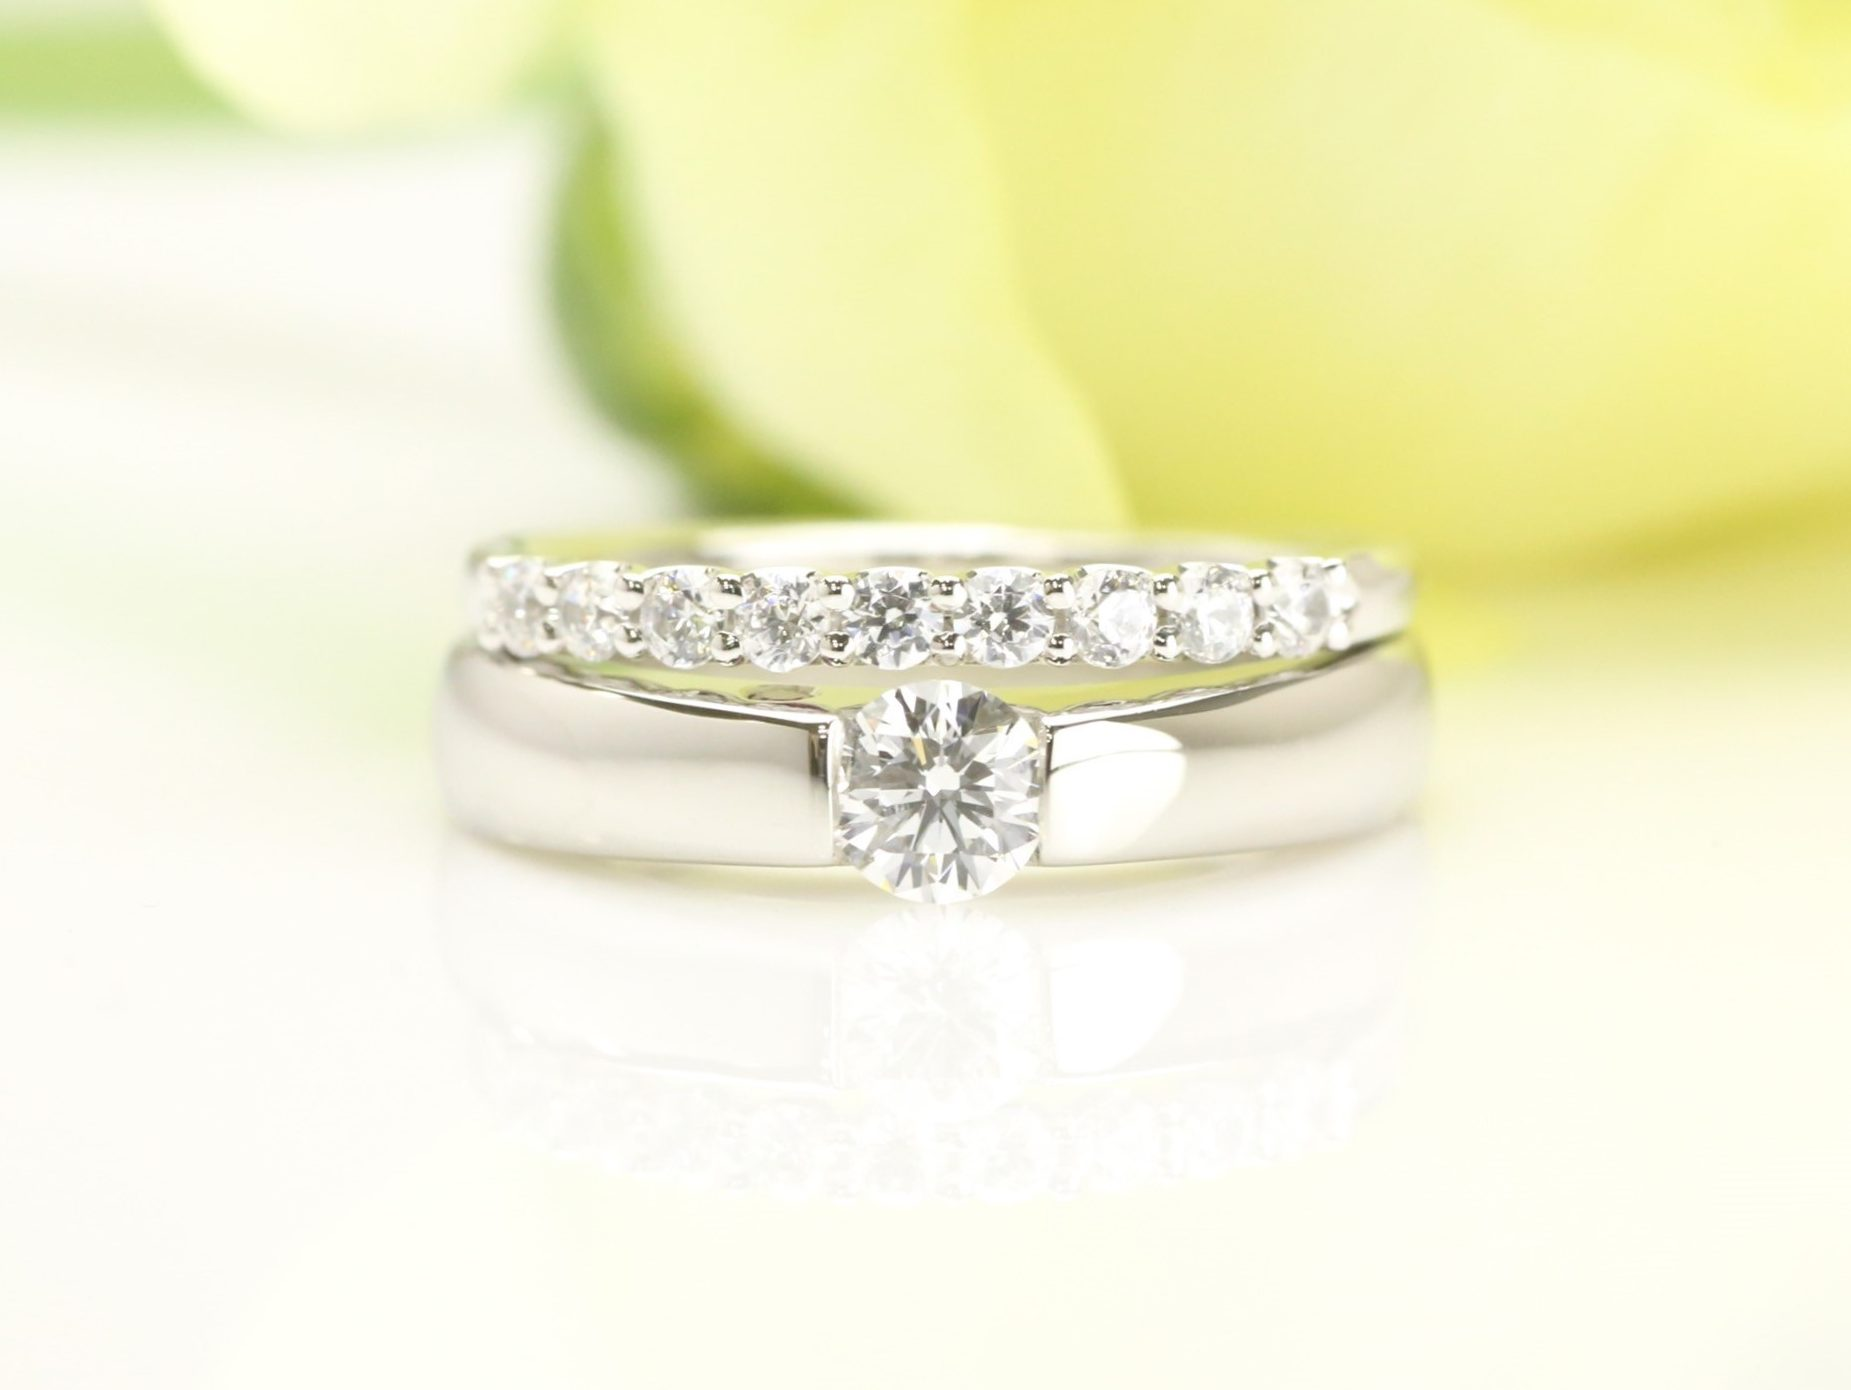 MARRIAGE RING & ENGAGEMENT RING2